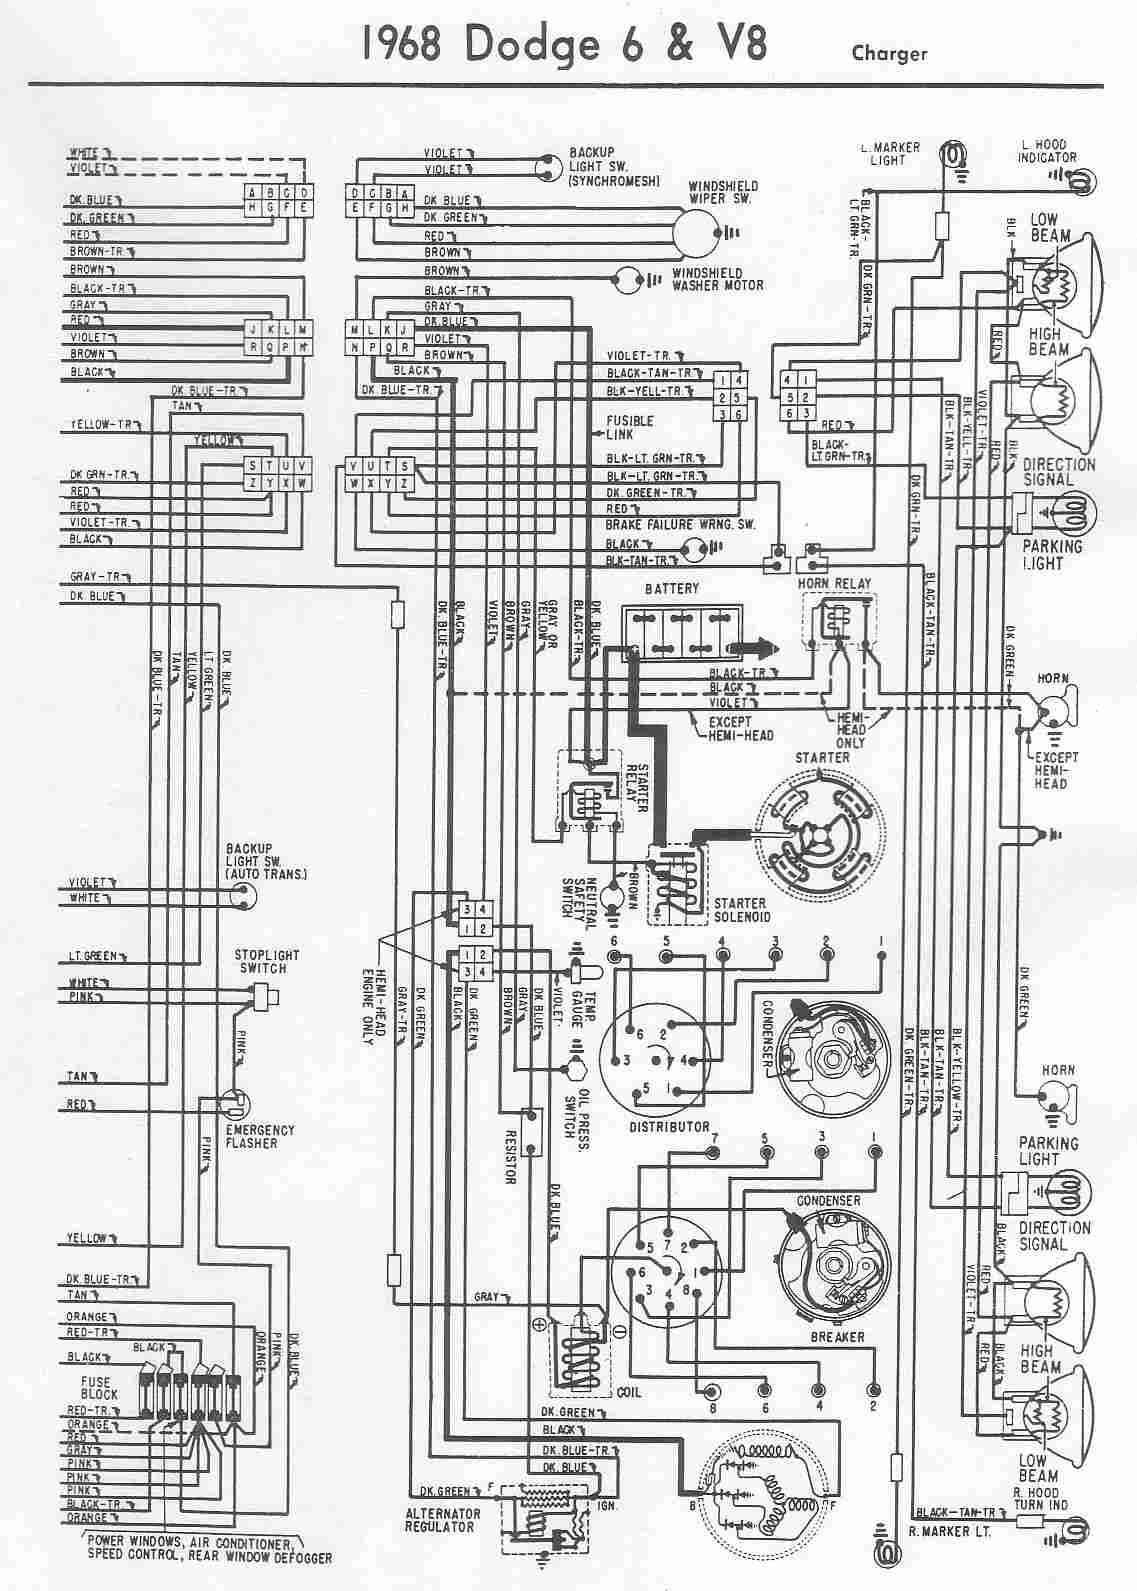 Dodge Car Manuals Wiring Diagrams Pdf Fault Codes Chrysler Neon 2000 Fuse Box Download